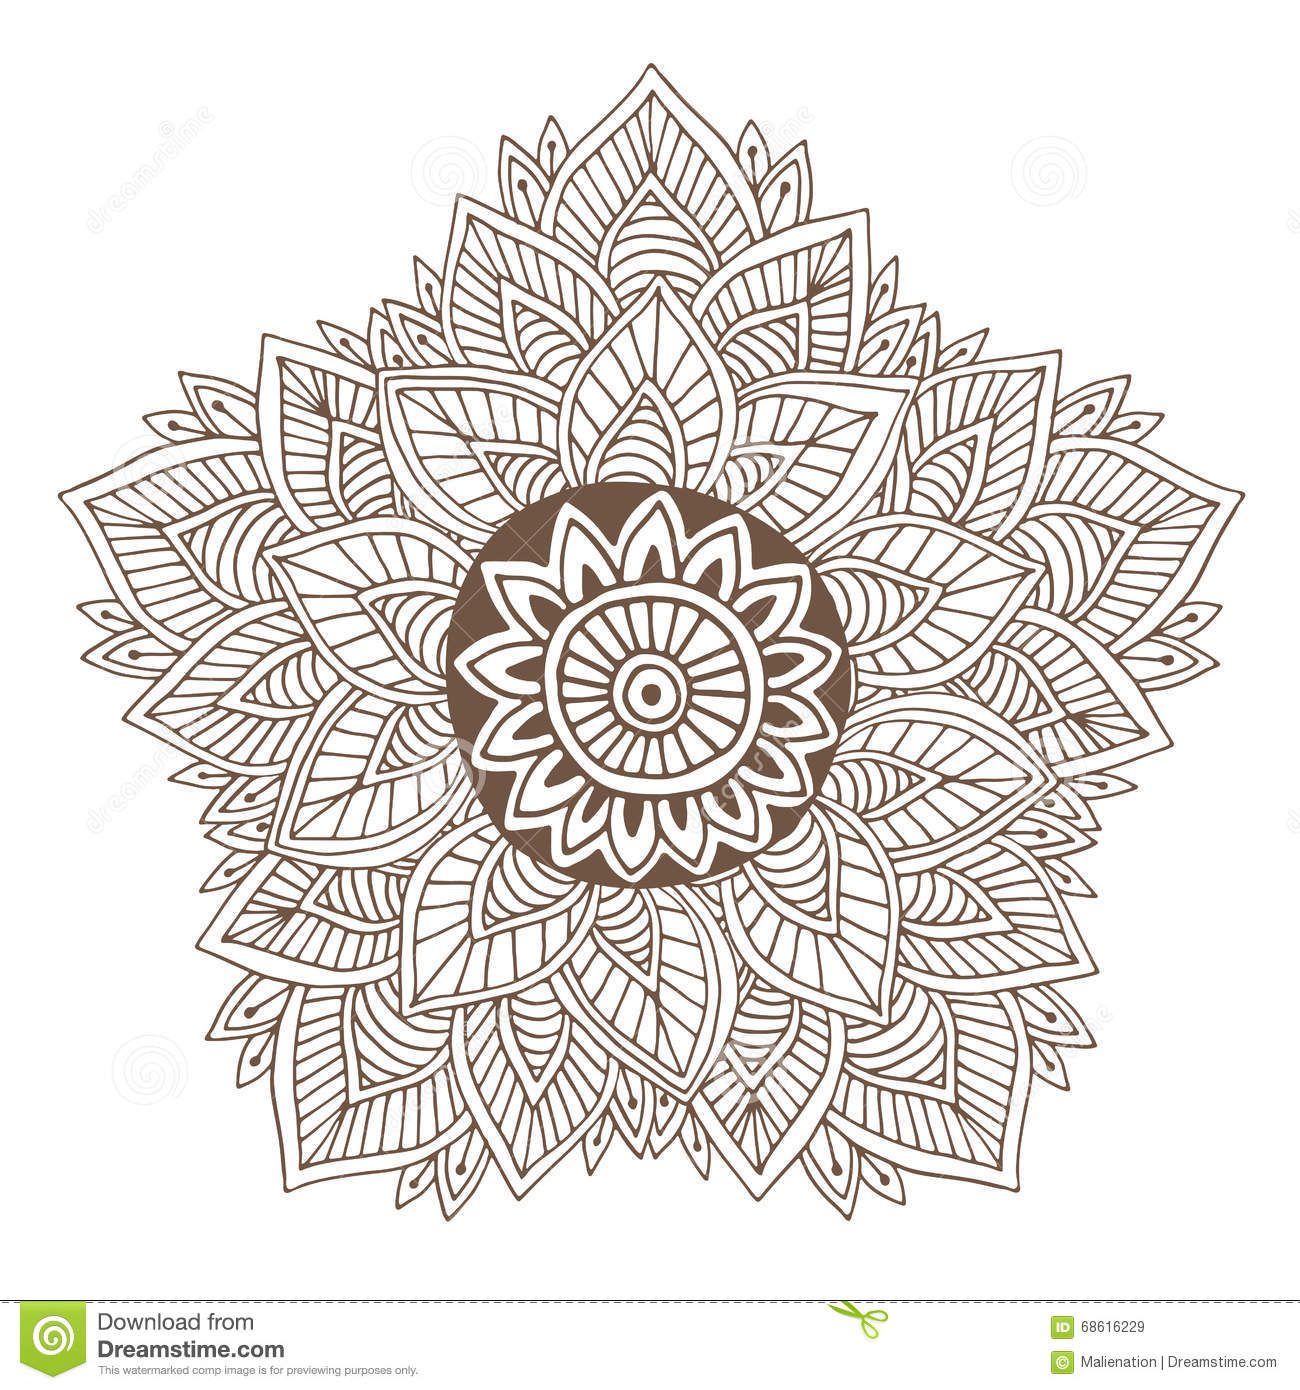 Tattoo designs coloring book - Vector Mandala Or Henna Tattoo Design Ornamental Round For Coloring Book Pages Or Packging Design